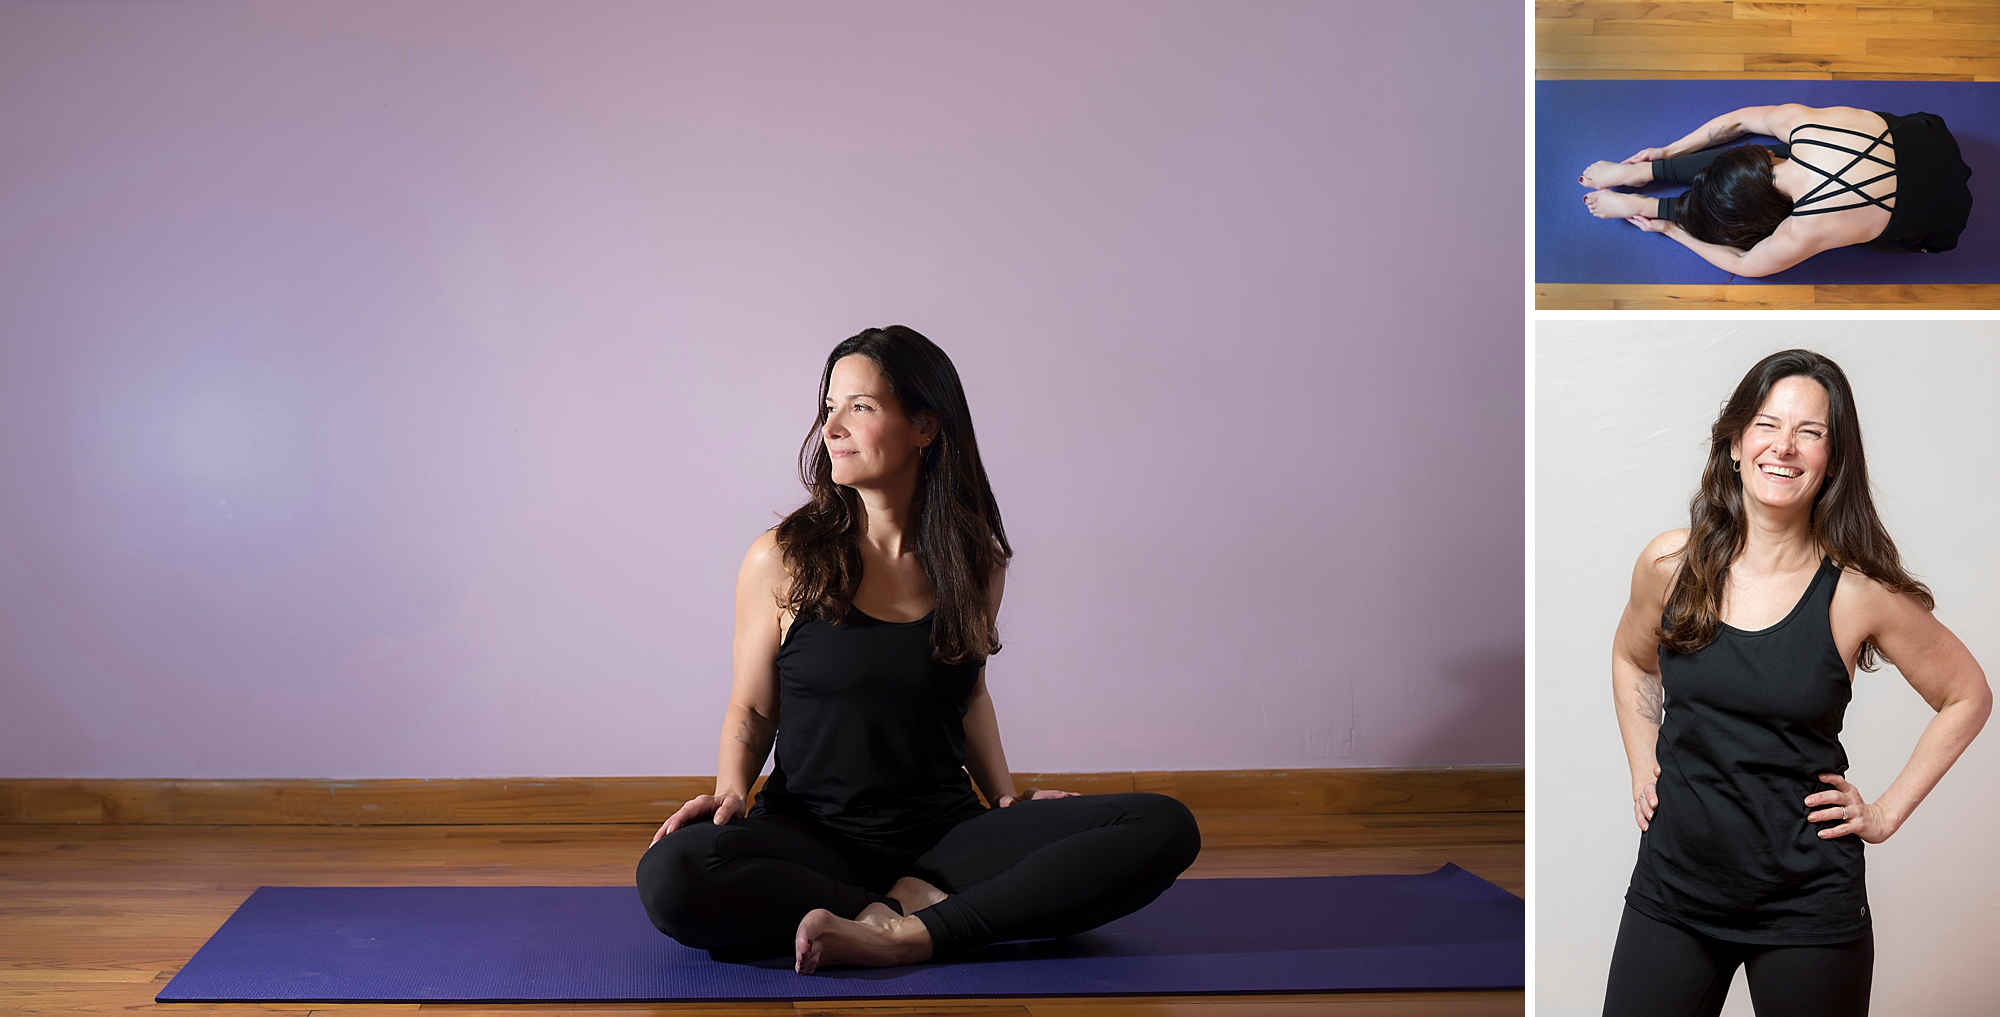 Lena was recently certified in teaching yoga and needed photos to share with the yoga studios were she would be teaching.